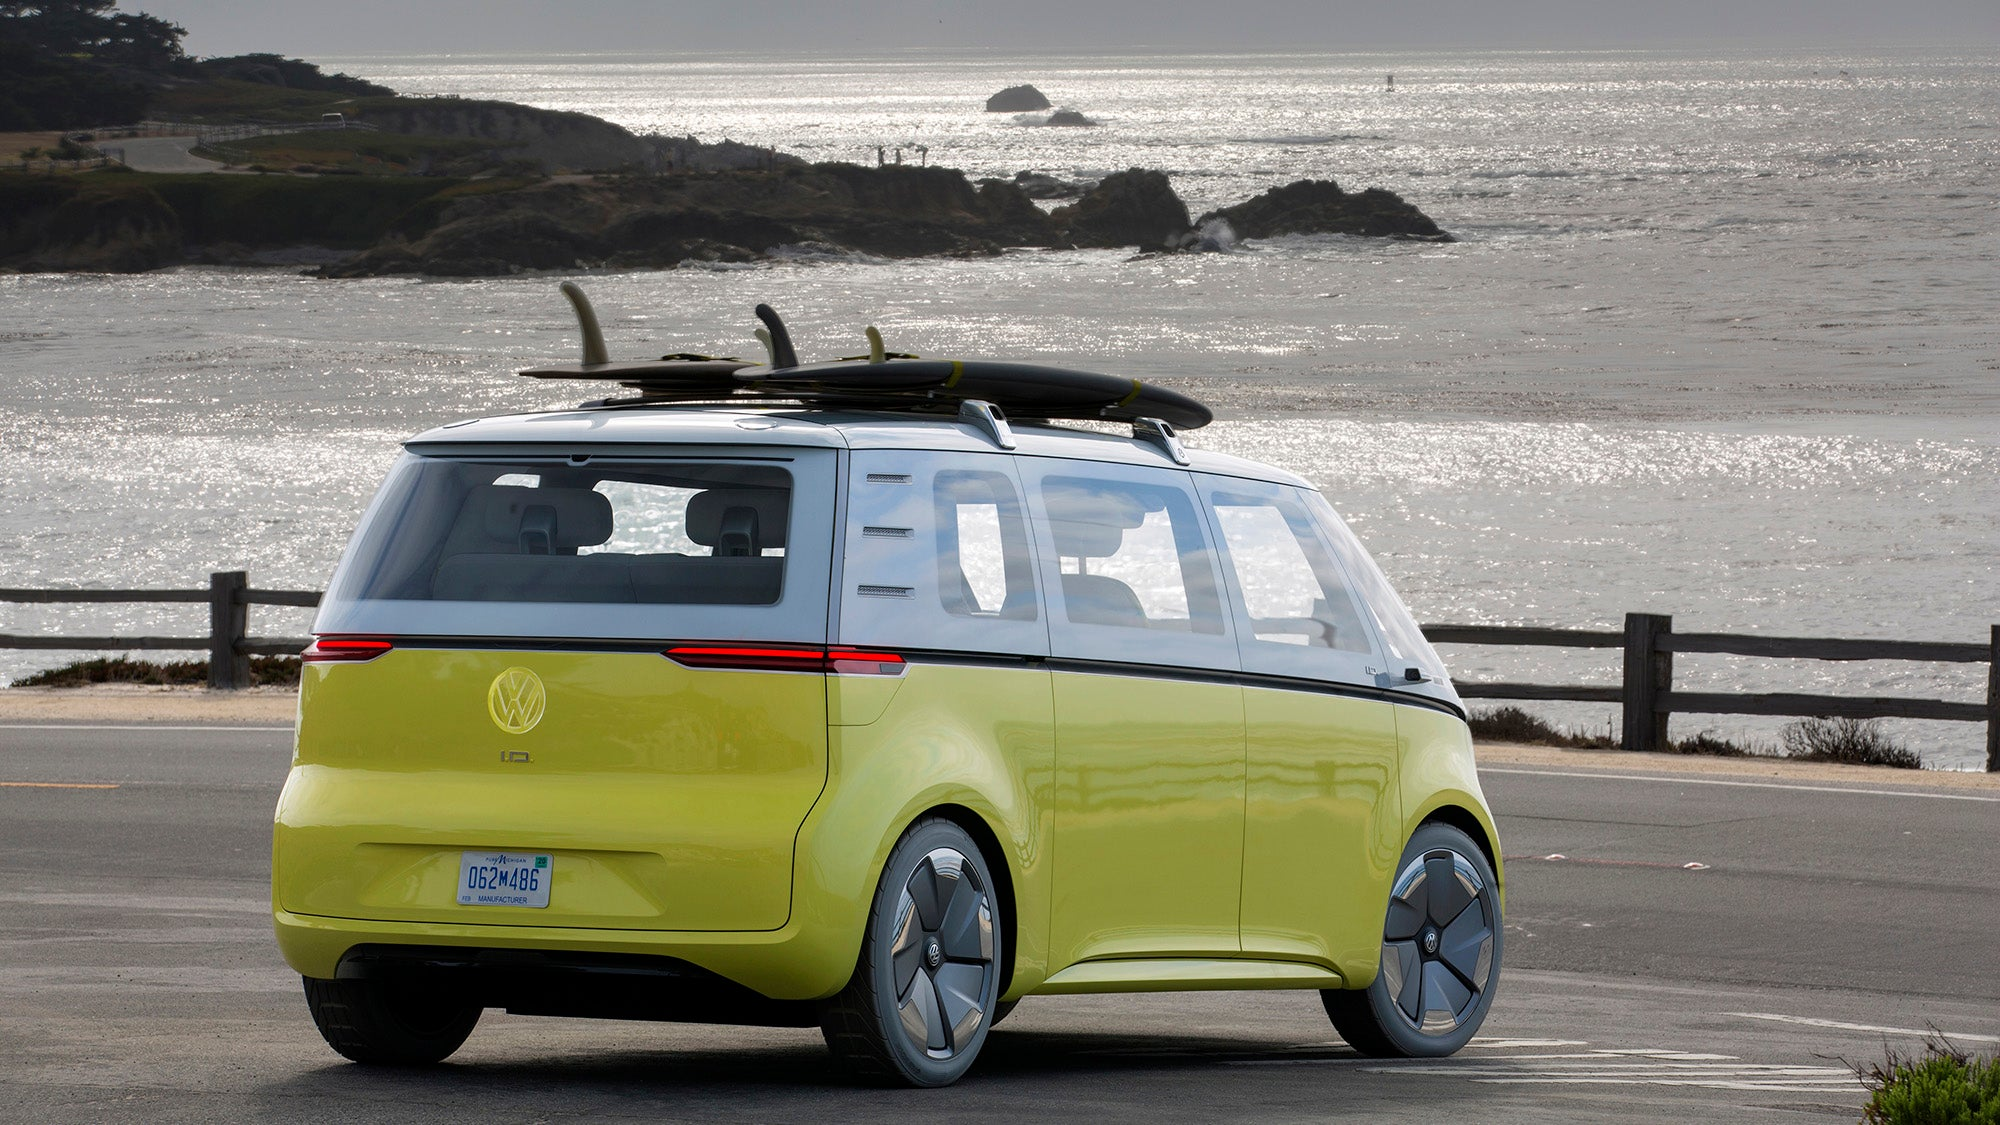 Volkswagen I.D. Buzz: This is VW's first electric Microbus, coming 2022 | Trusted Reviews